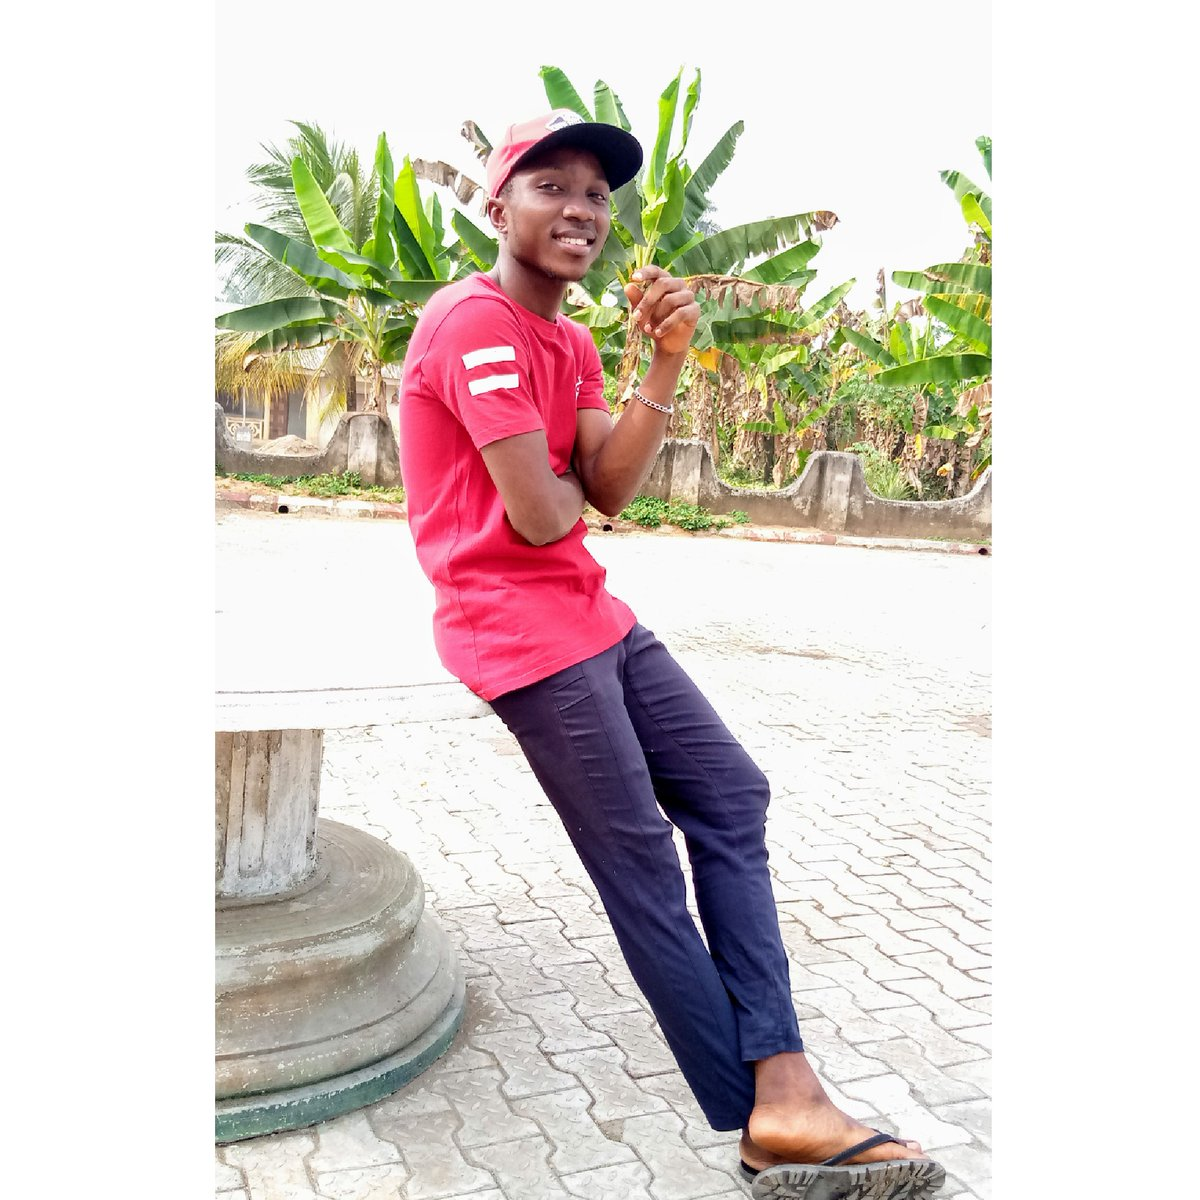 Holiday is finished  Last Picturez at Home...... Business Startz..... Your Photographer....   Zestedlenz... @OmaEleDanz @Glad62360 @photoexpress  @TECNOMobileNG This Spark 3 is Awesome.....pic.twitter.com/65y5SRNaEu